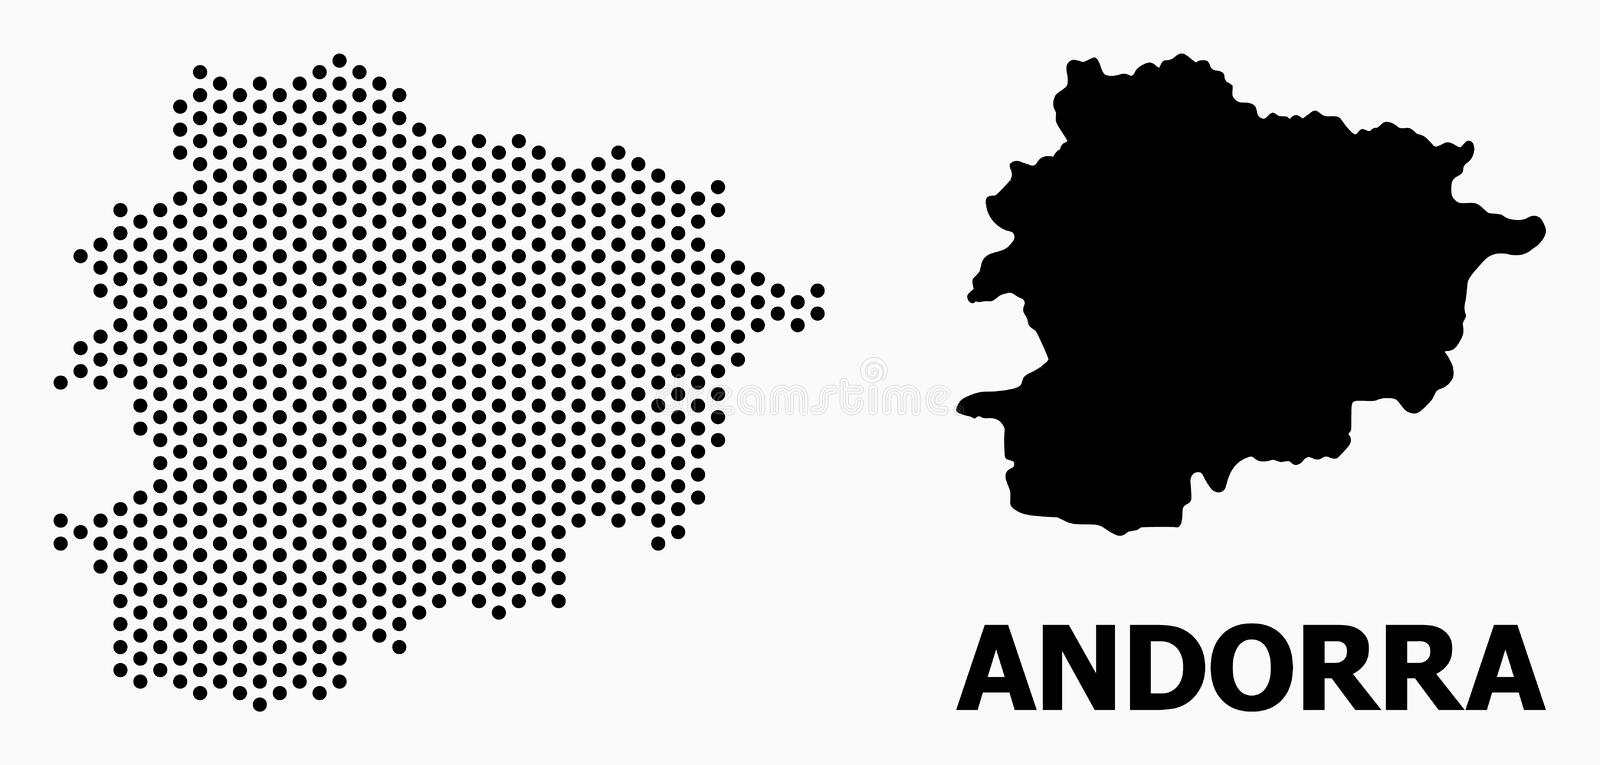 Pixel Pattern Map of Andorra. Pixel map of Andorra composition and solid illustration. Vector map of Andorra composition of sphere spots with honeycomb geometric royalty free illustration